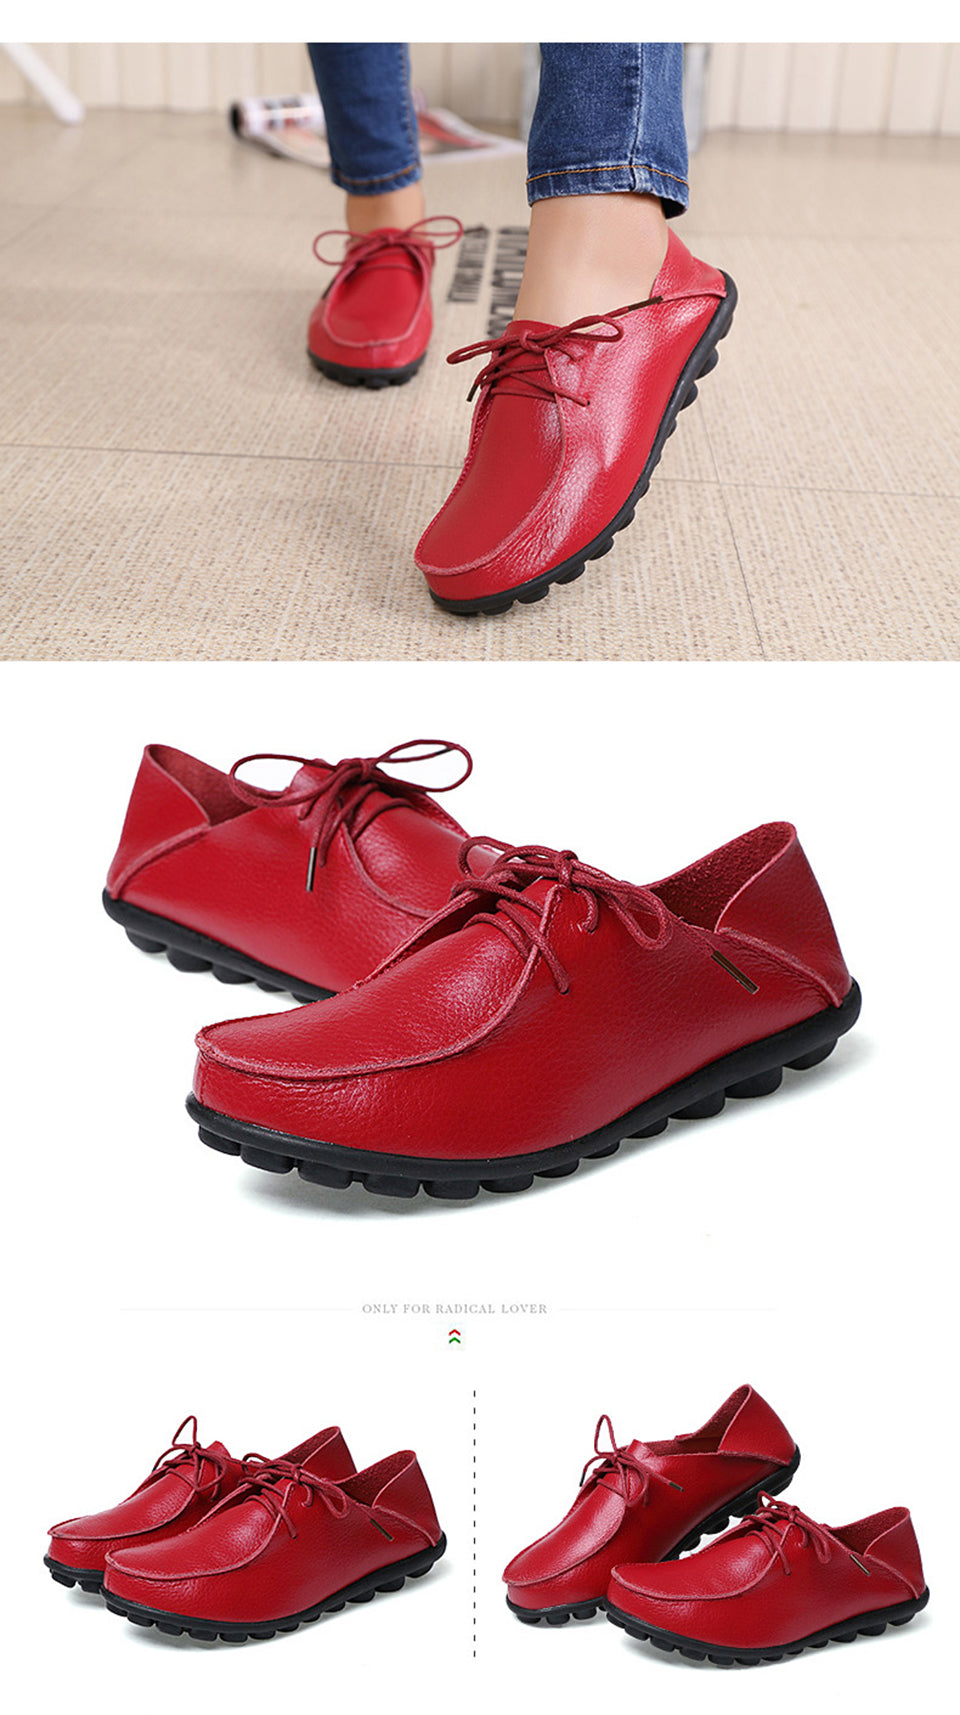 bright red lace up leather shoes with black nodulated grippy base 01